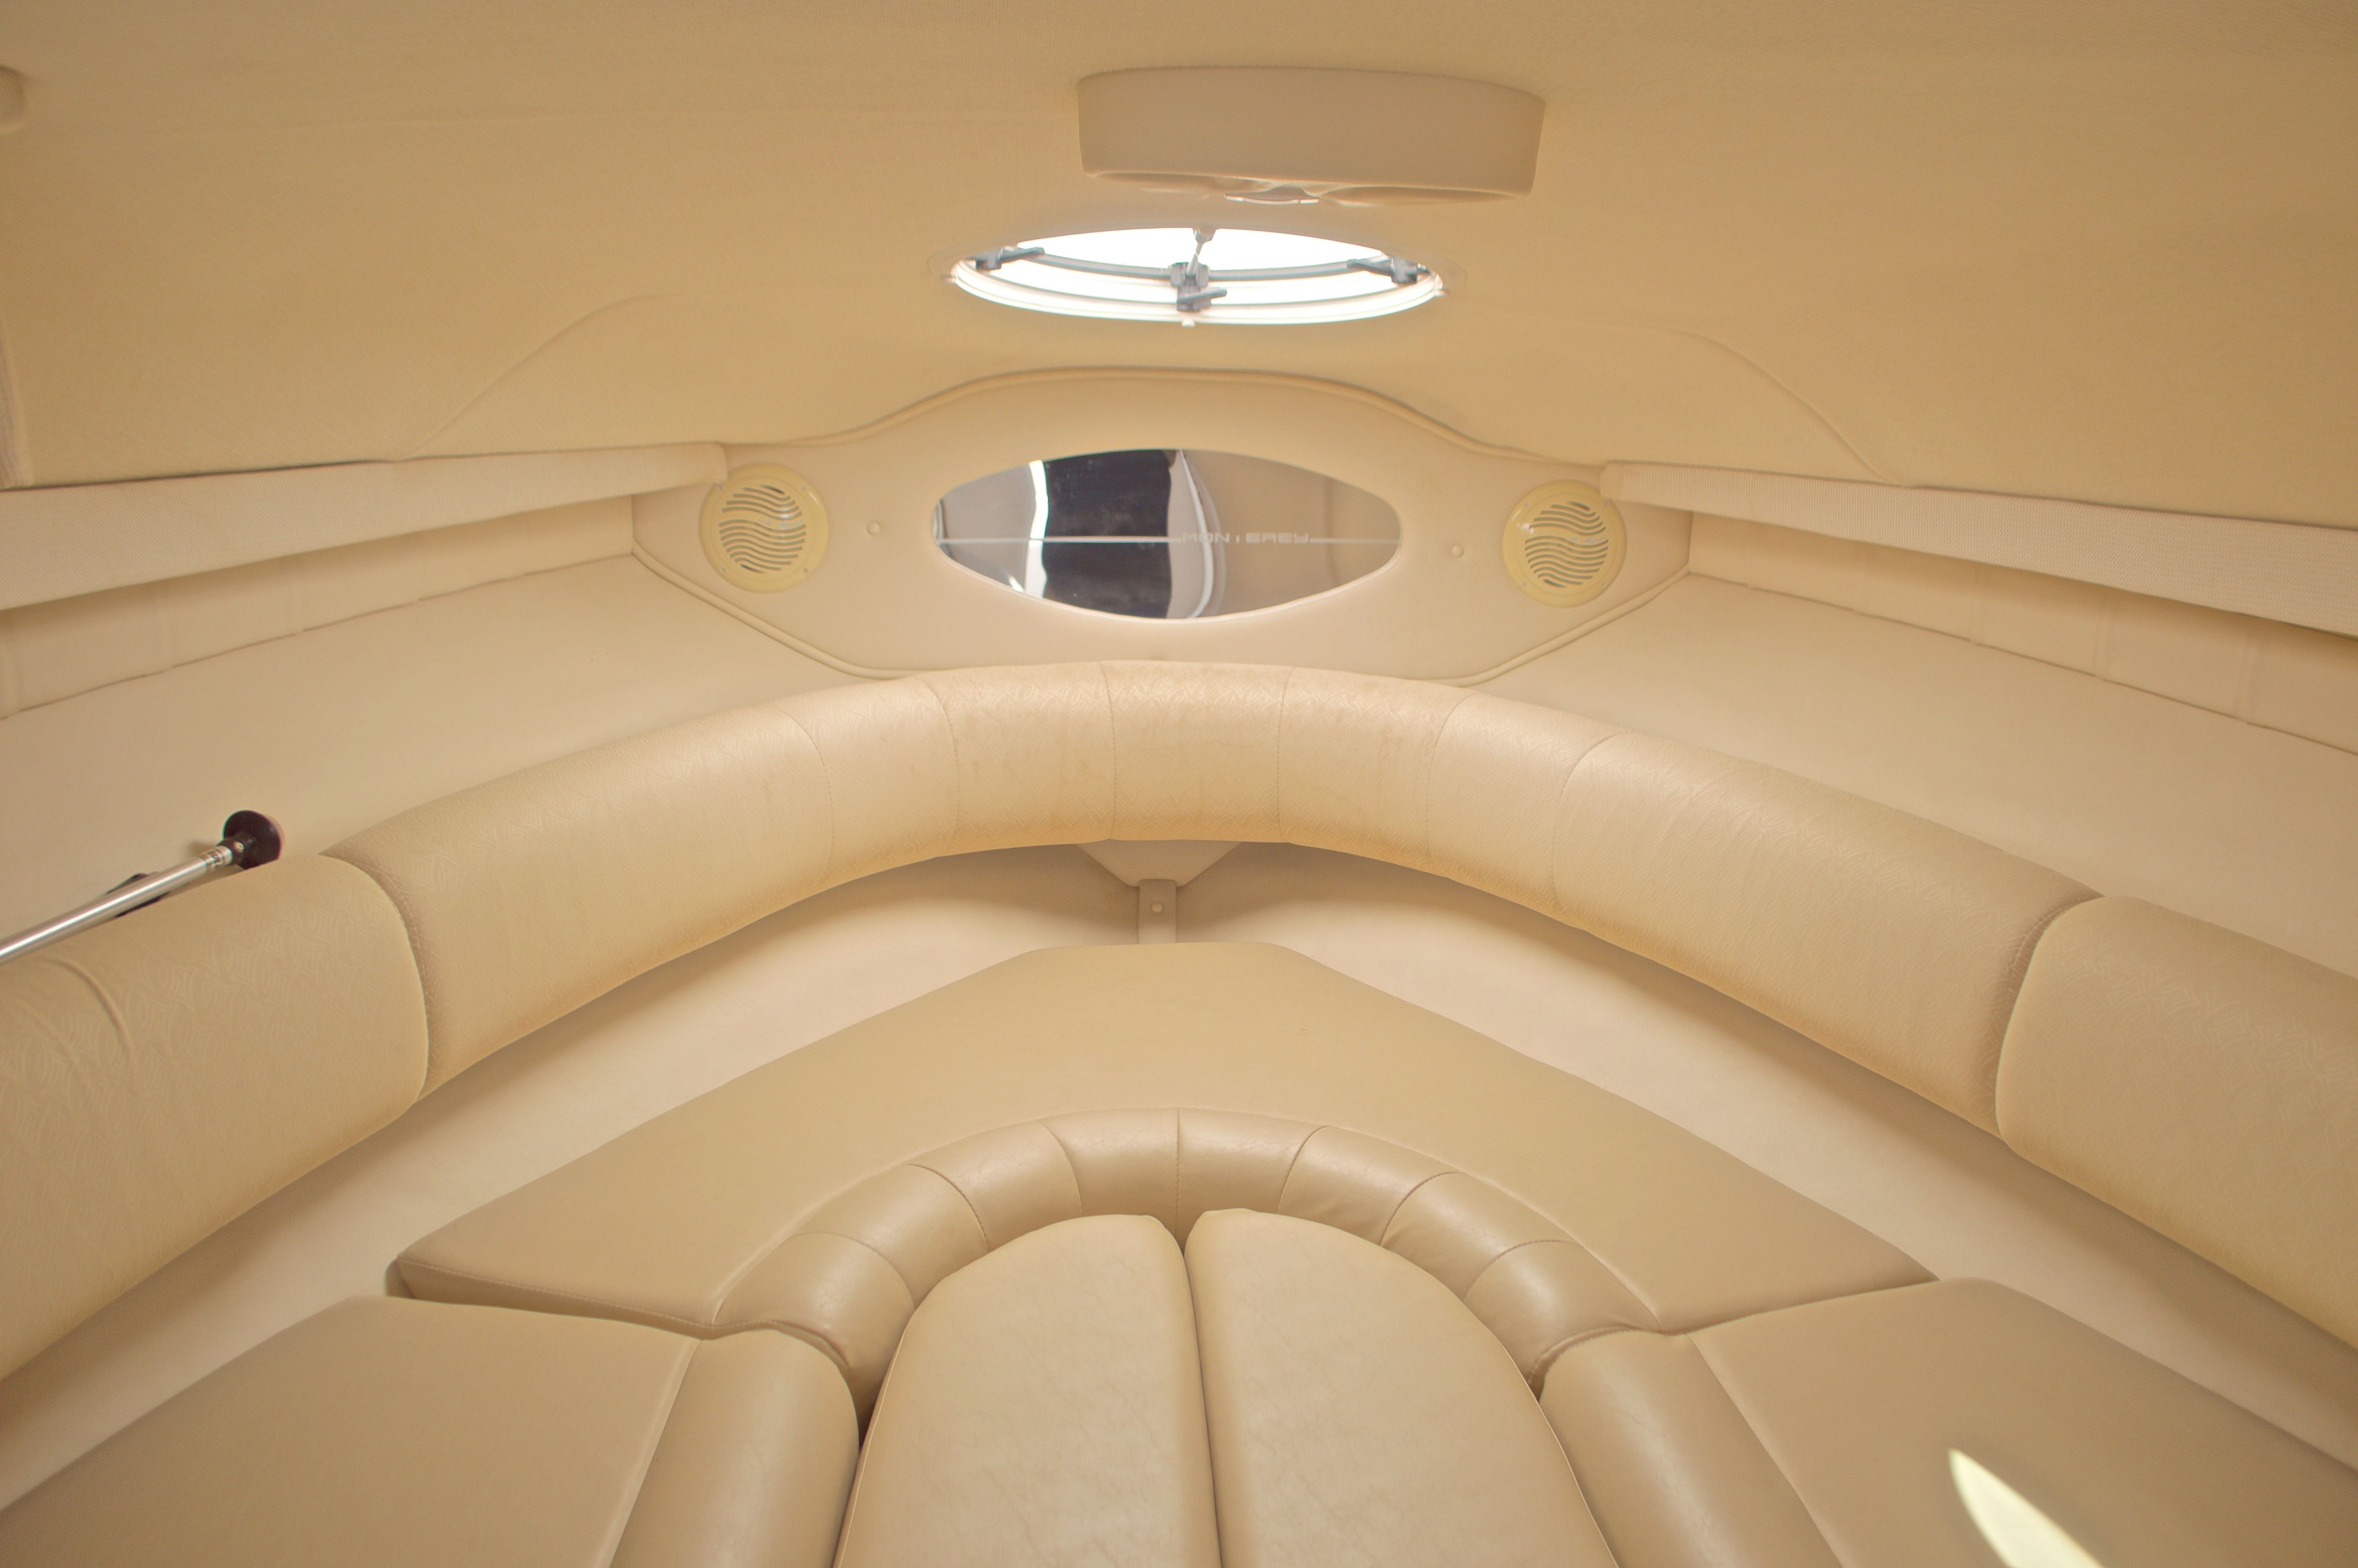 Thumbnail 43 for Used 2002 Monterey 262 Cruiser boat for sale in West Palm Beach, FL